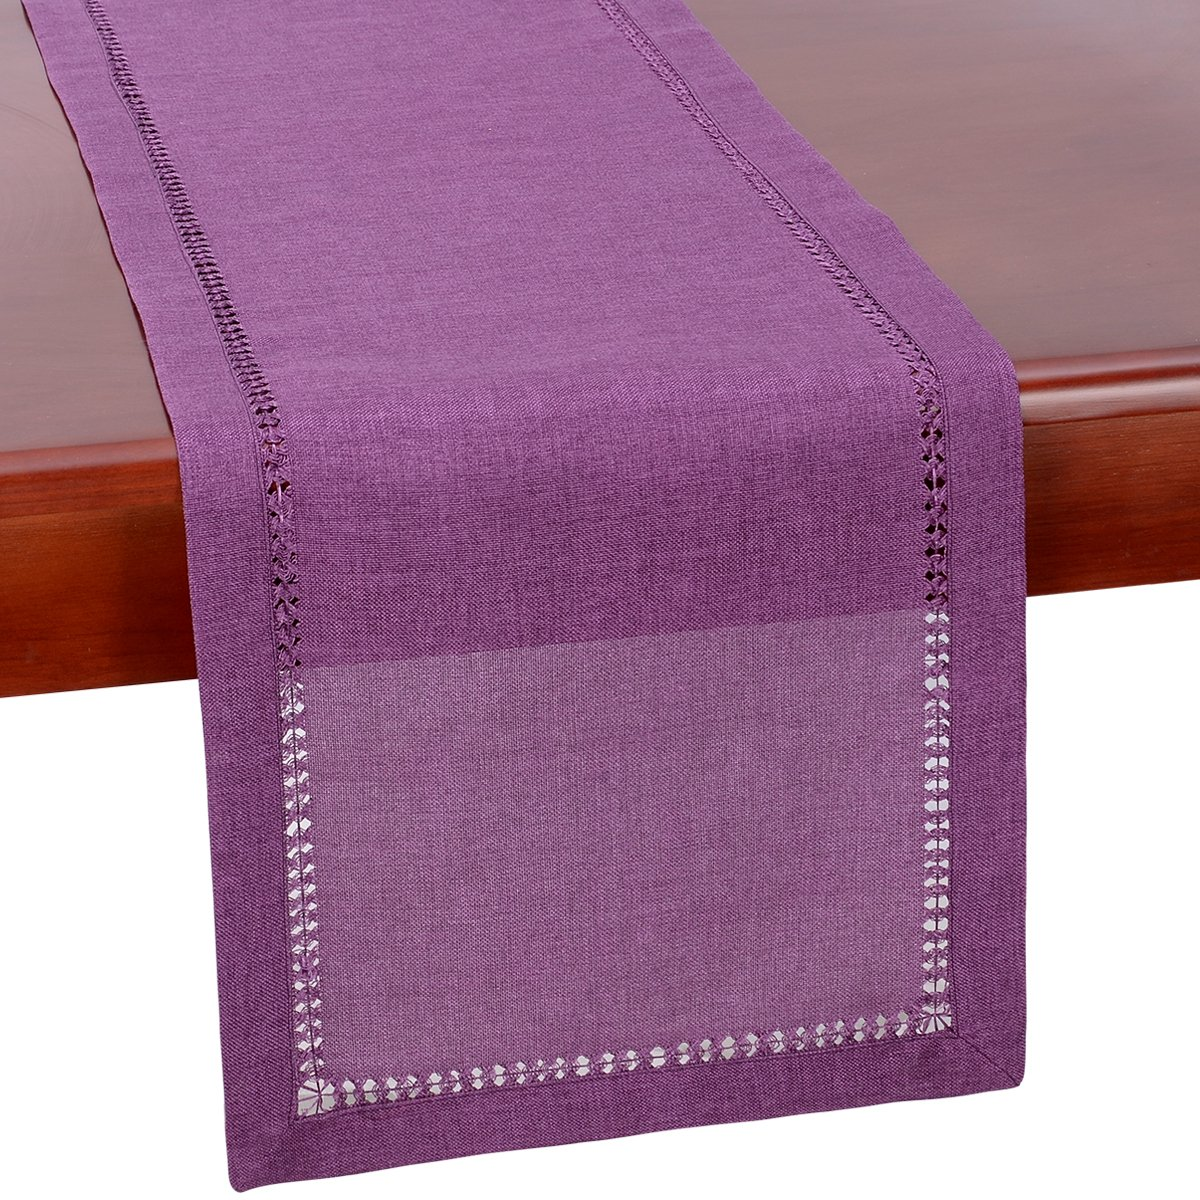 GRELUCGO Hemstitch Purple Table Runner Or Dresser Scarf, Solid Color, Weddings, Easter and Everyday Use (14 x 36 Inch)